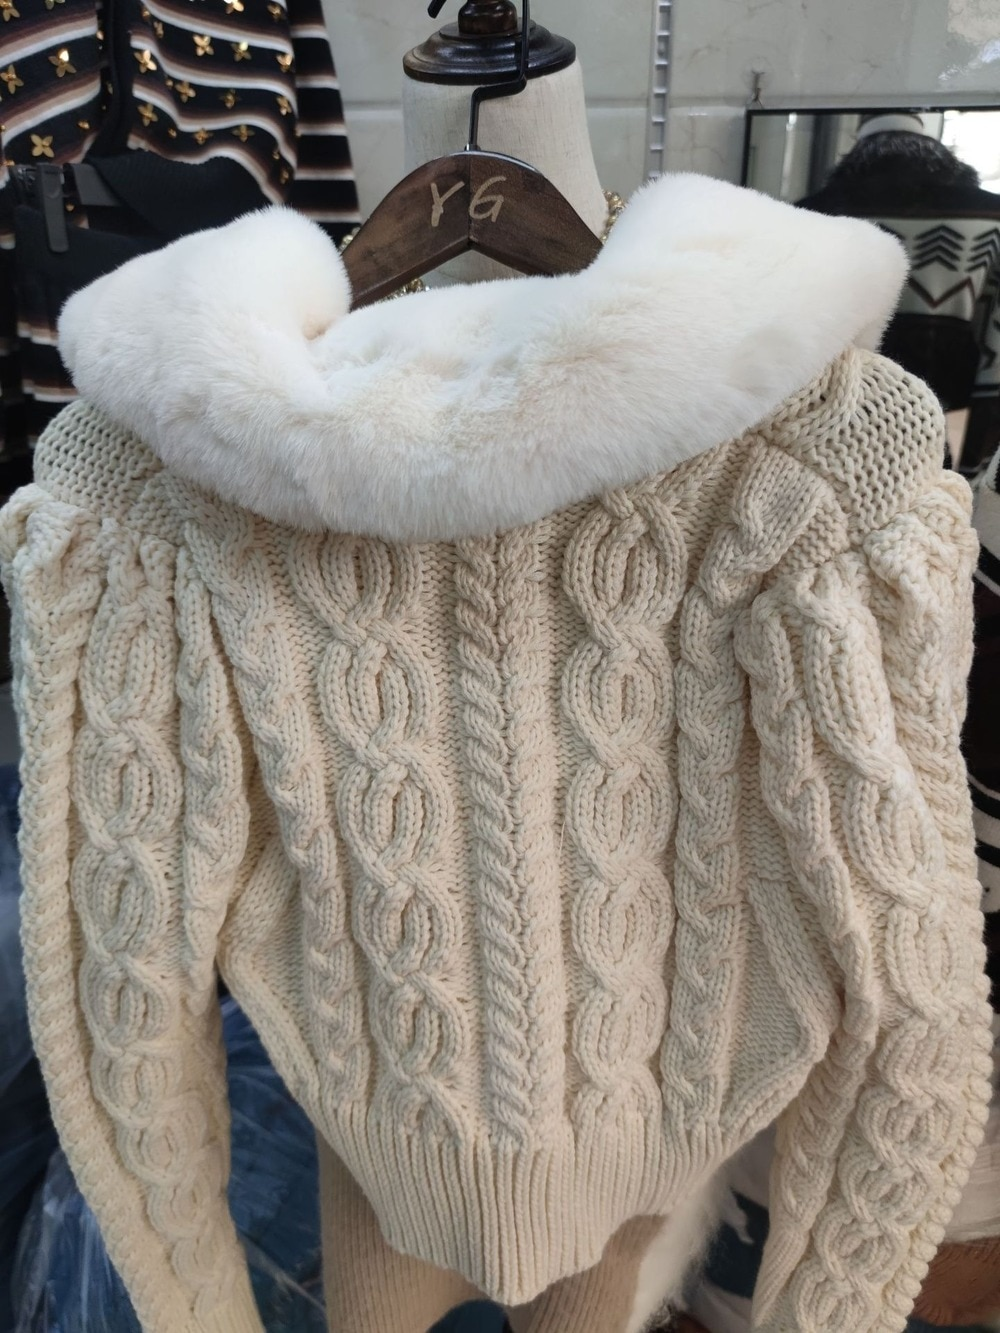 Cardigan sweater 2021 autumn and winter pure white with fur lapel women's loose knitted crochet coat top enlarge